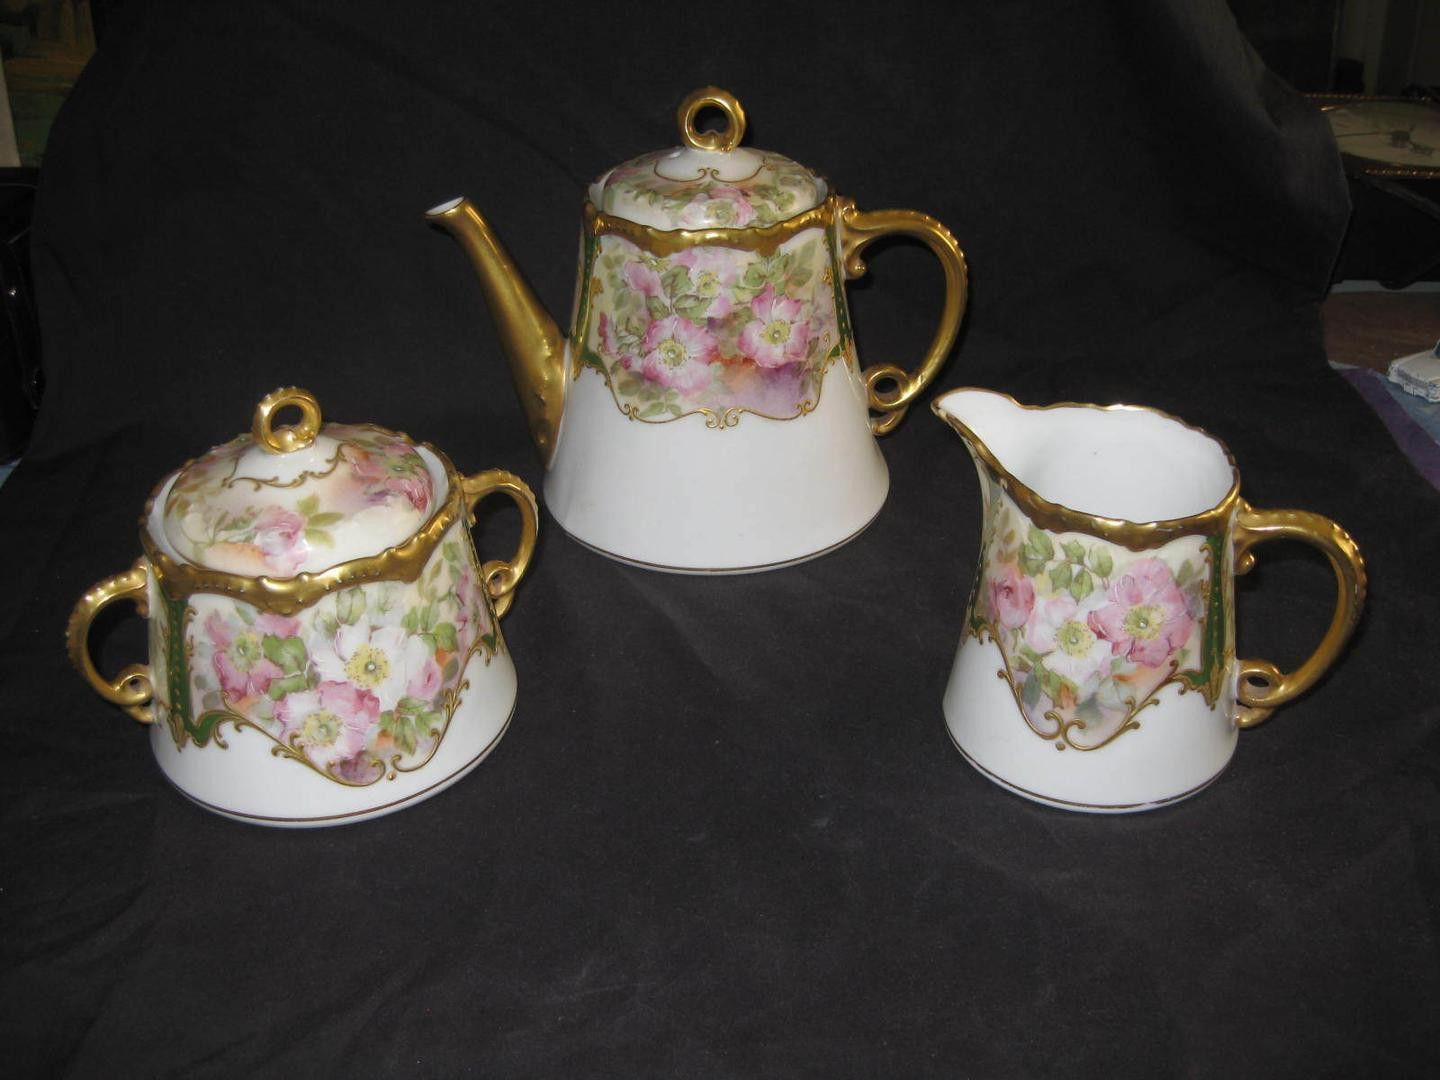 A Beautiful 3 Piece Tea/coffee Or Chocolate Set Of Limoges, France Coronet  Porcelain